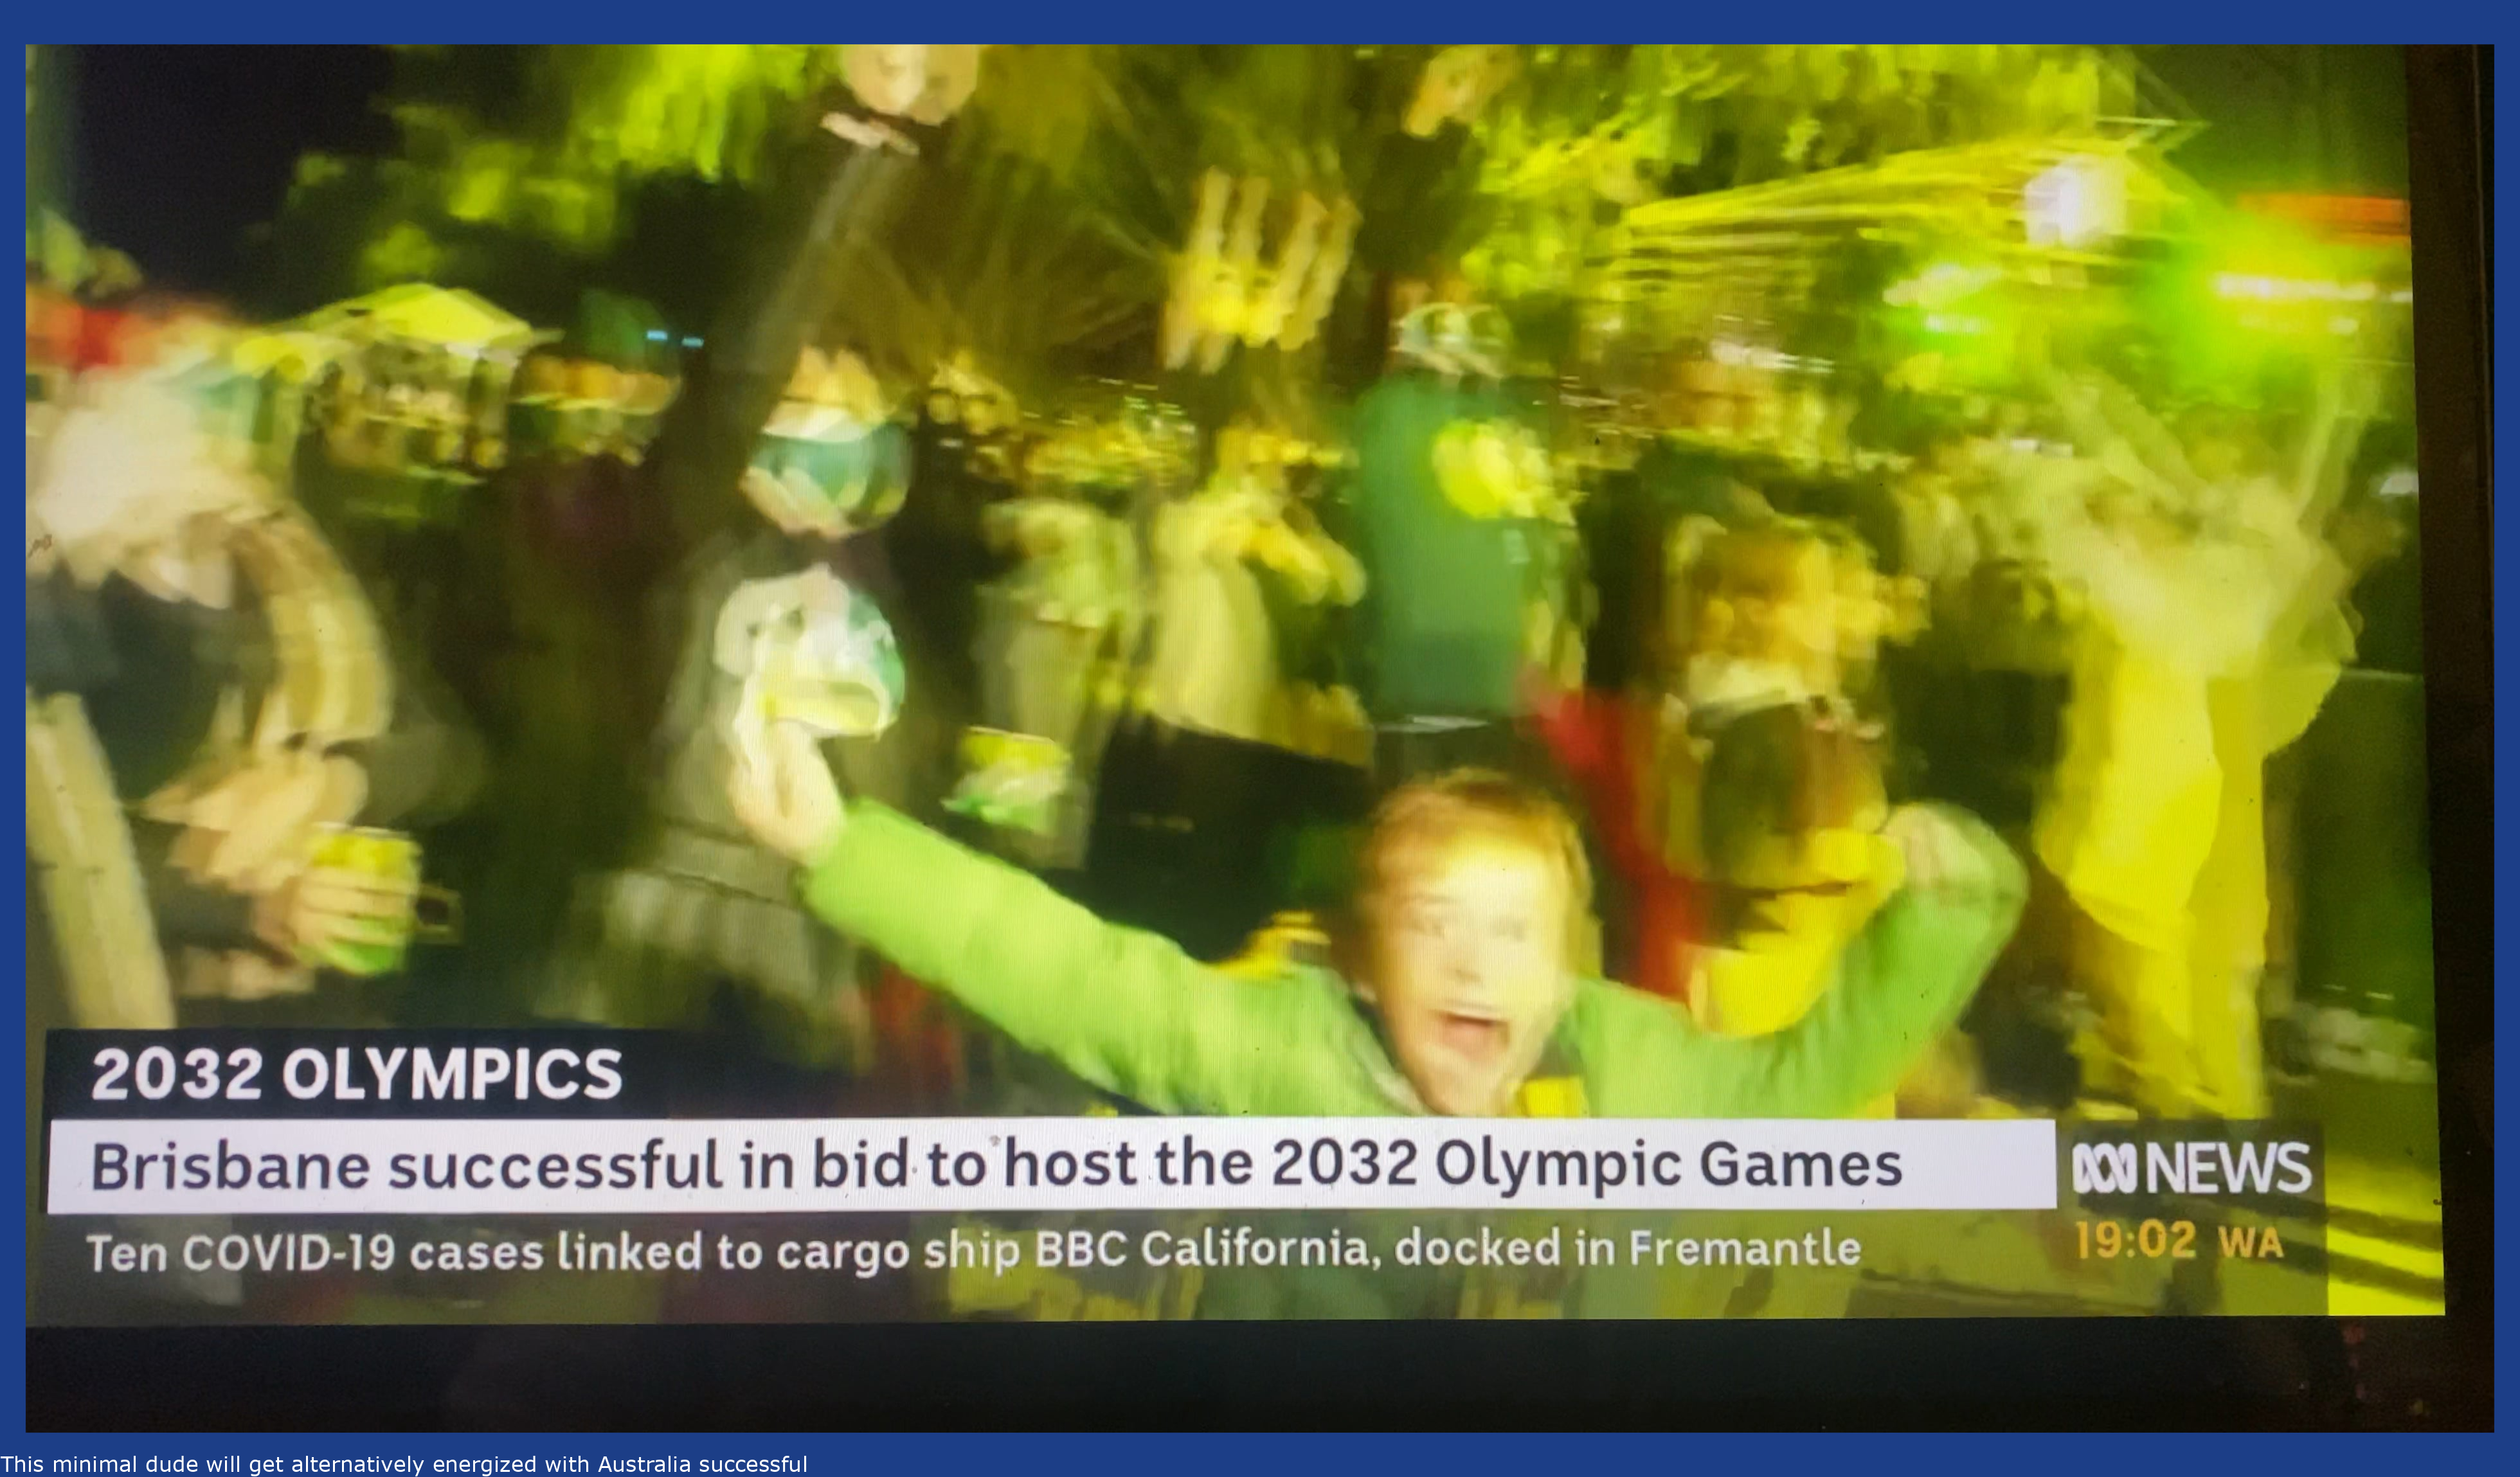 This little dude gets rather excited with Australia winning the bid for the 2032 olympics.